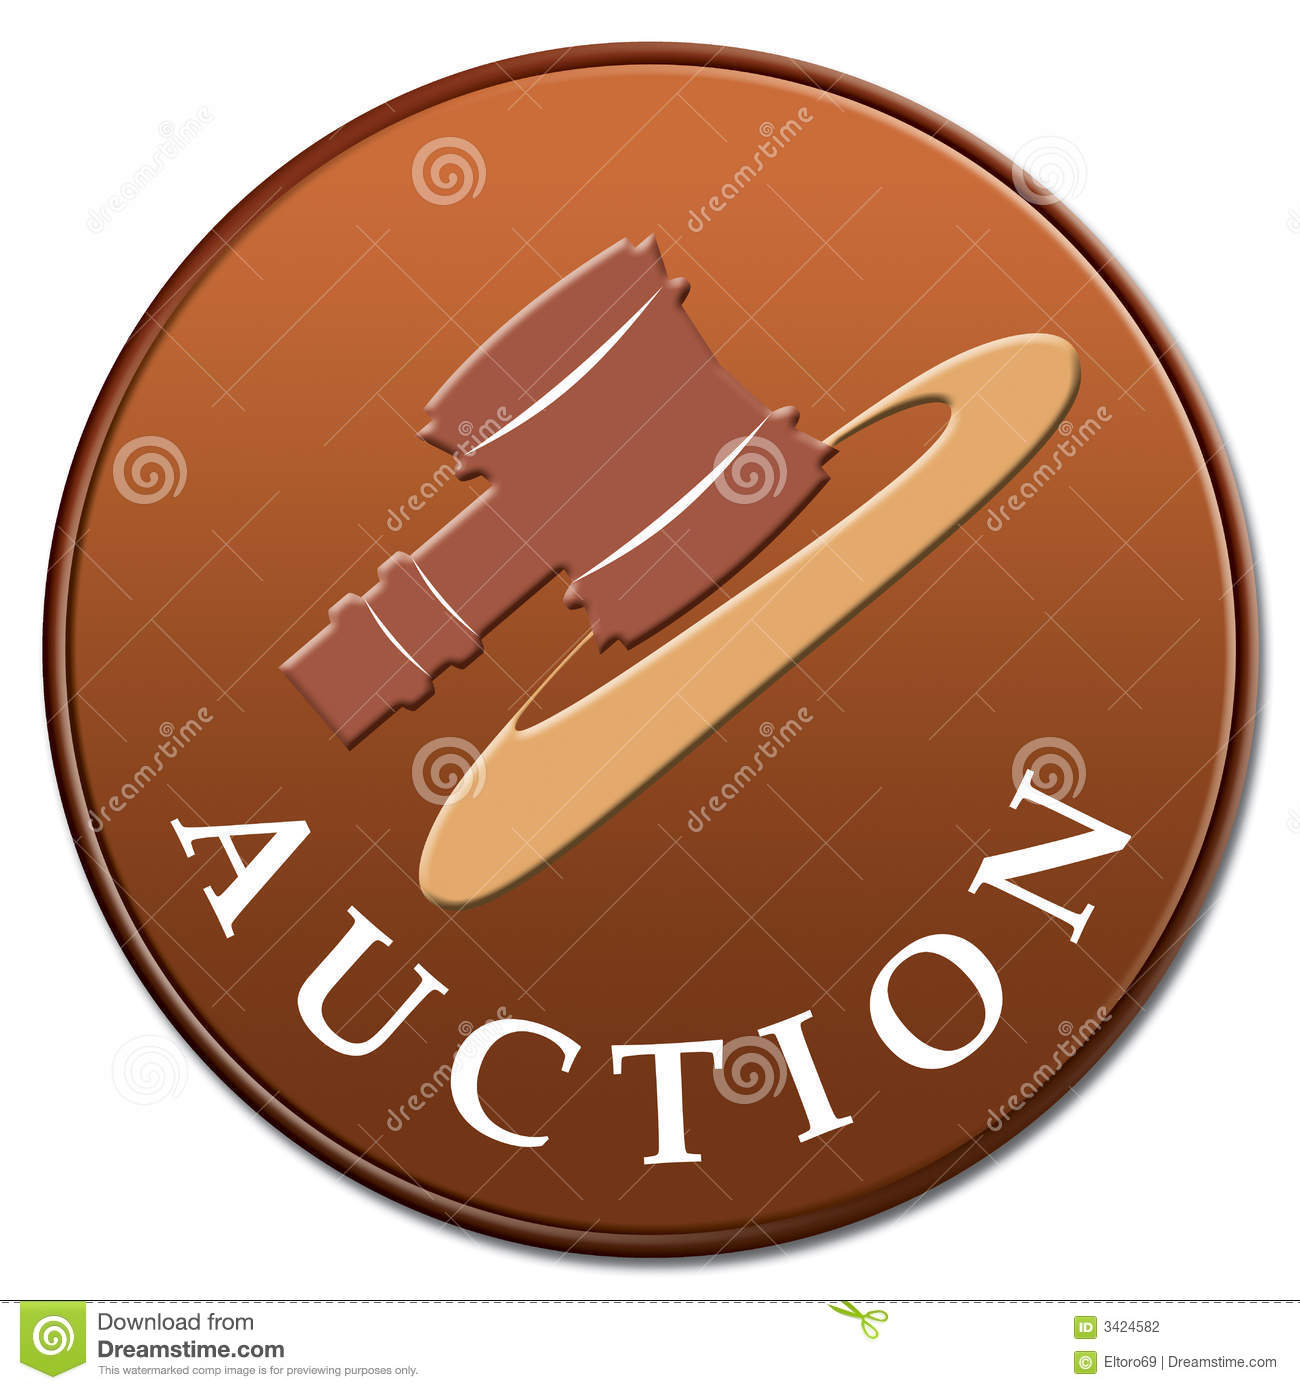 Auction icon stock photo. Image of auctioneer, order ...